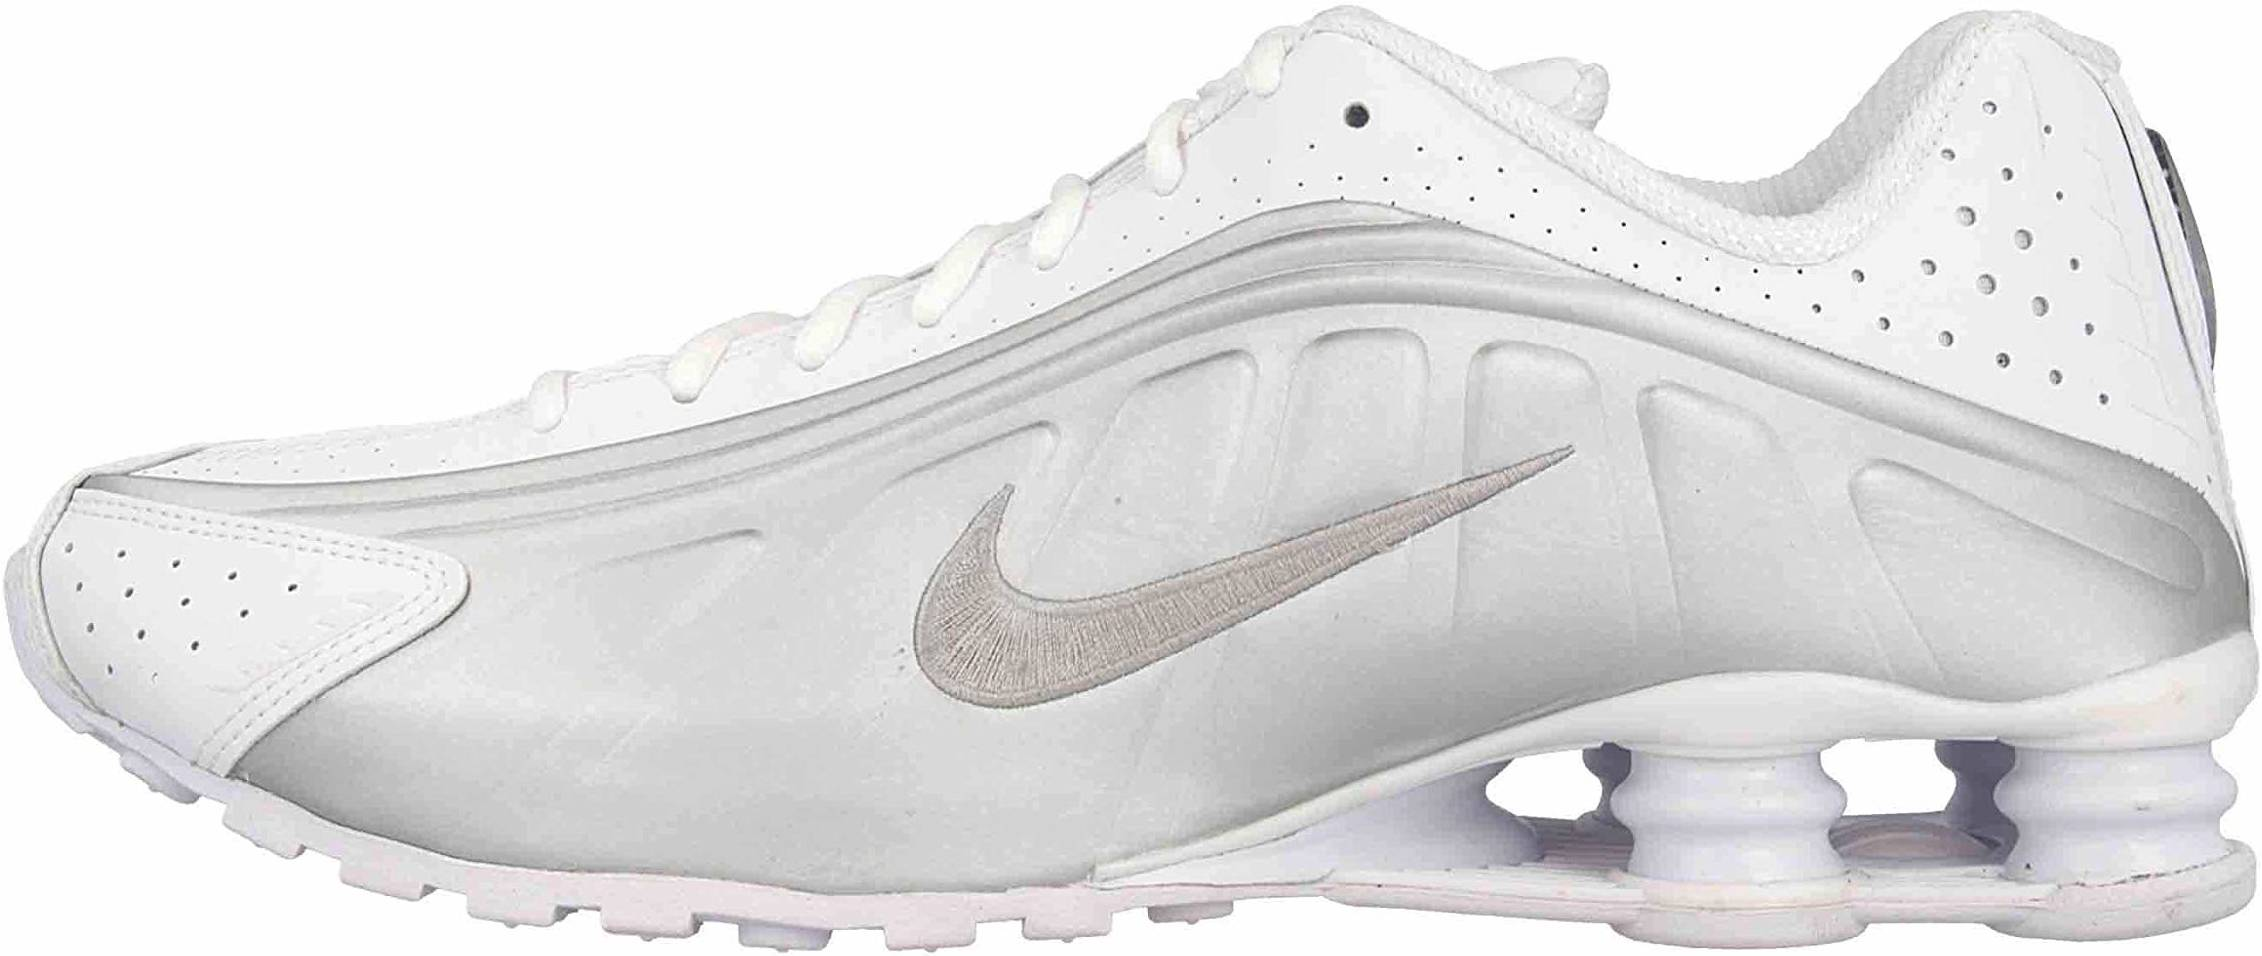 Nike Shox R4 sneakers in 6 colors (only $122) | RunRepeat